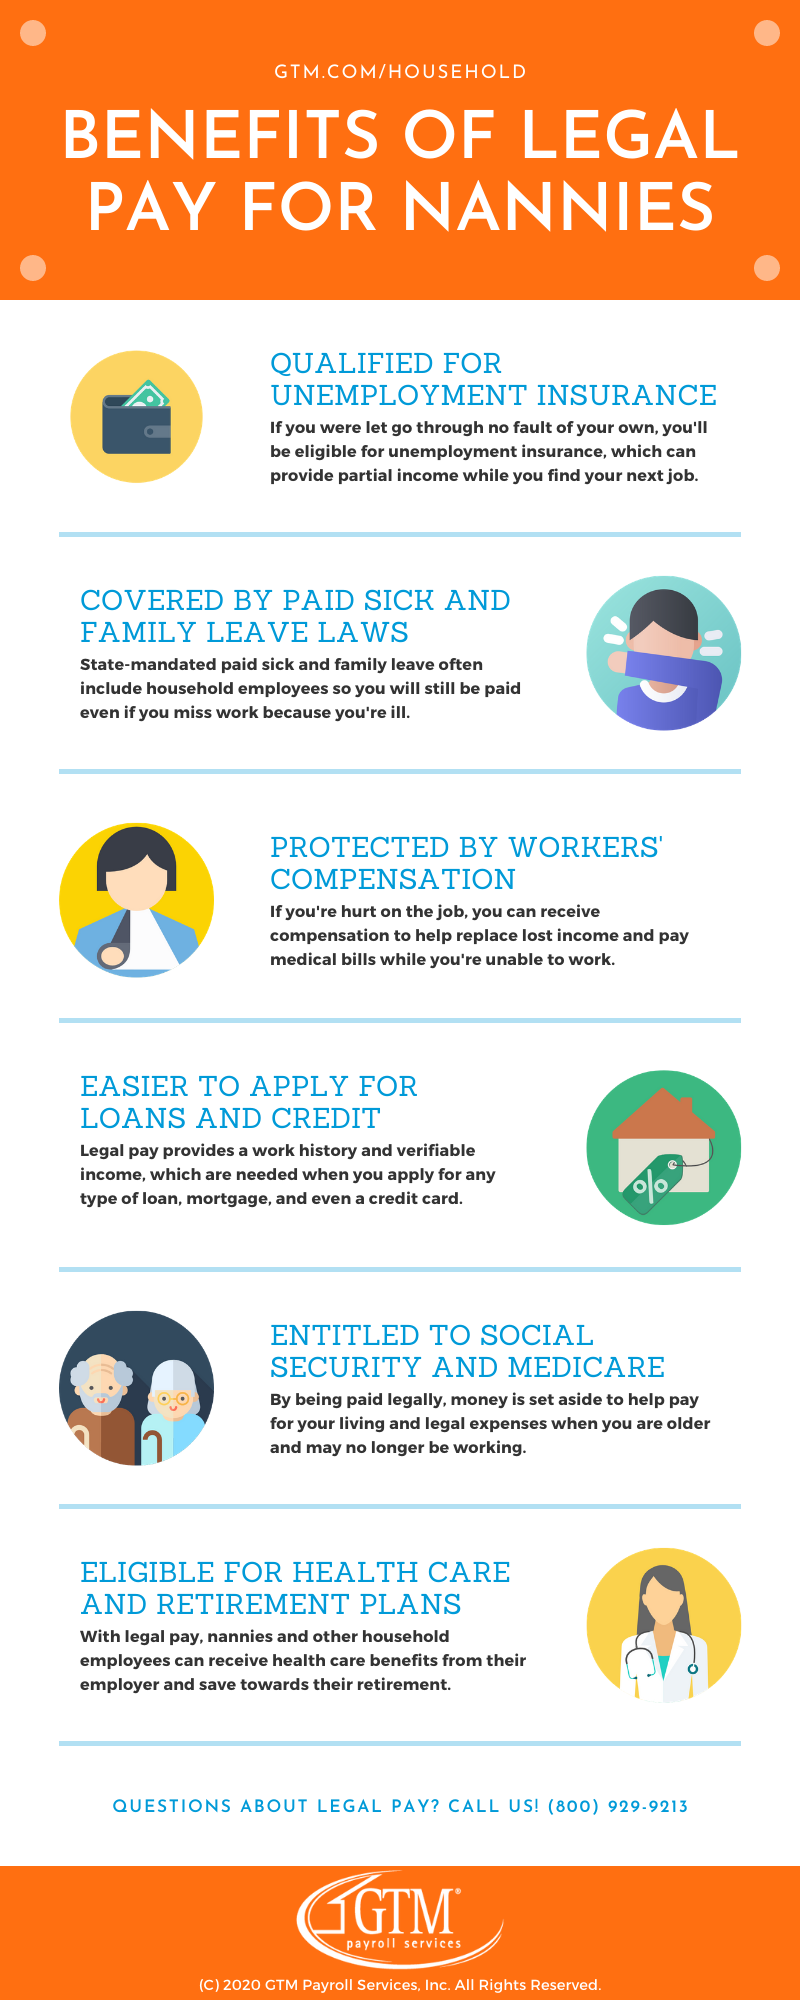 Benefits of Legal Pay for Nannies